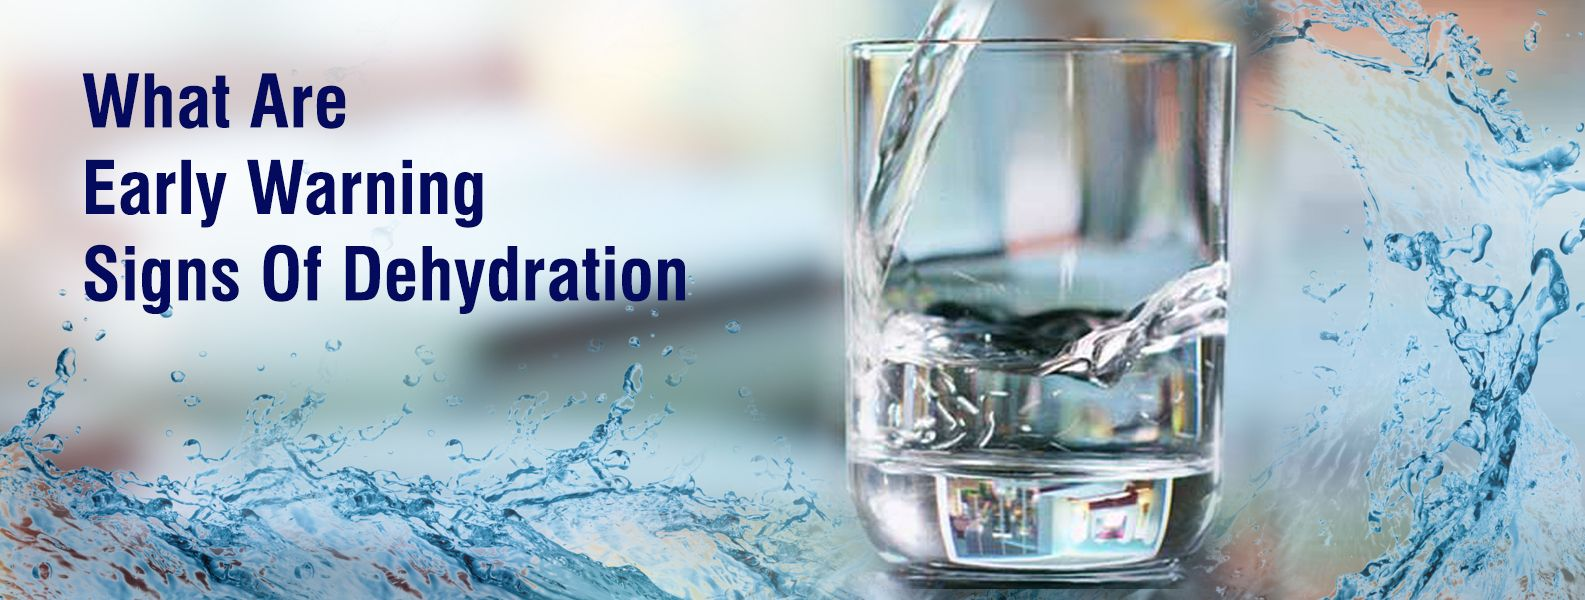 WHAT ARE EARLY WARNING SIGNS OF DEHYDRATION?